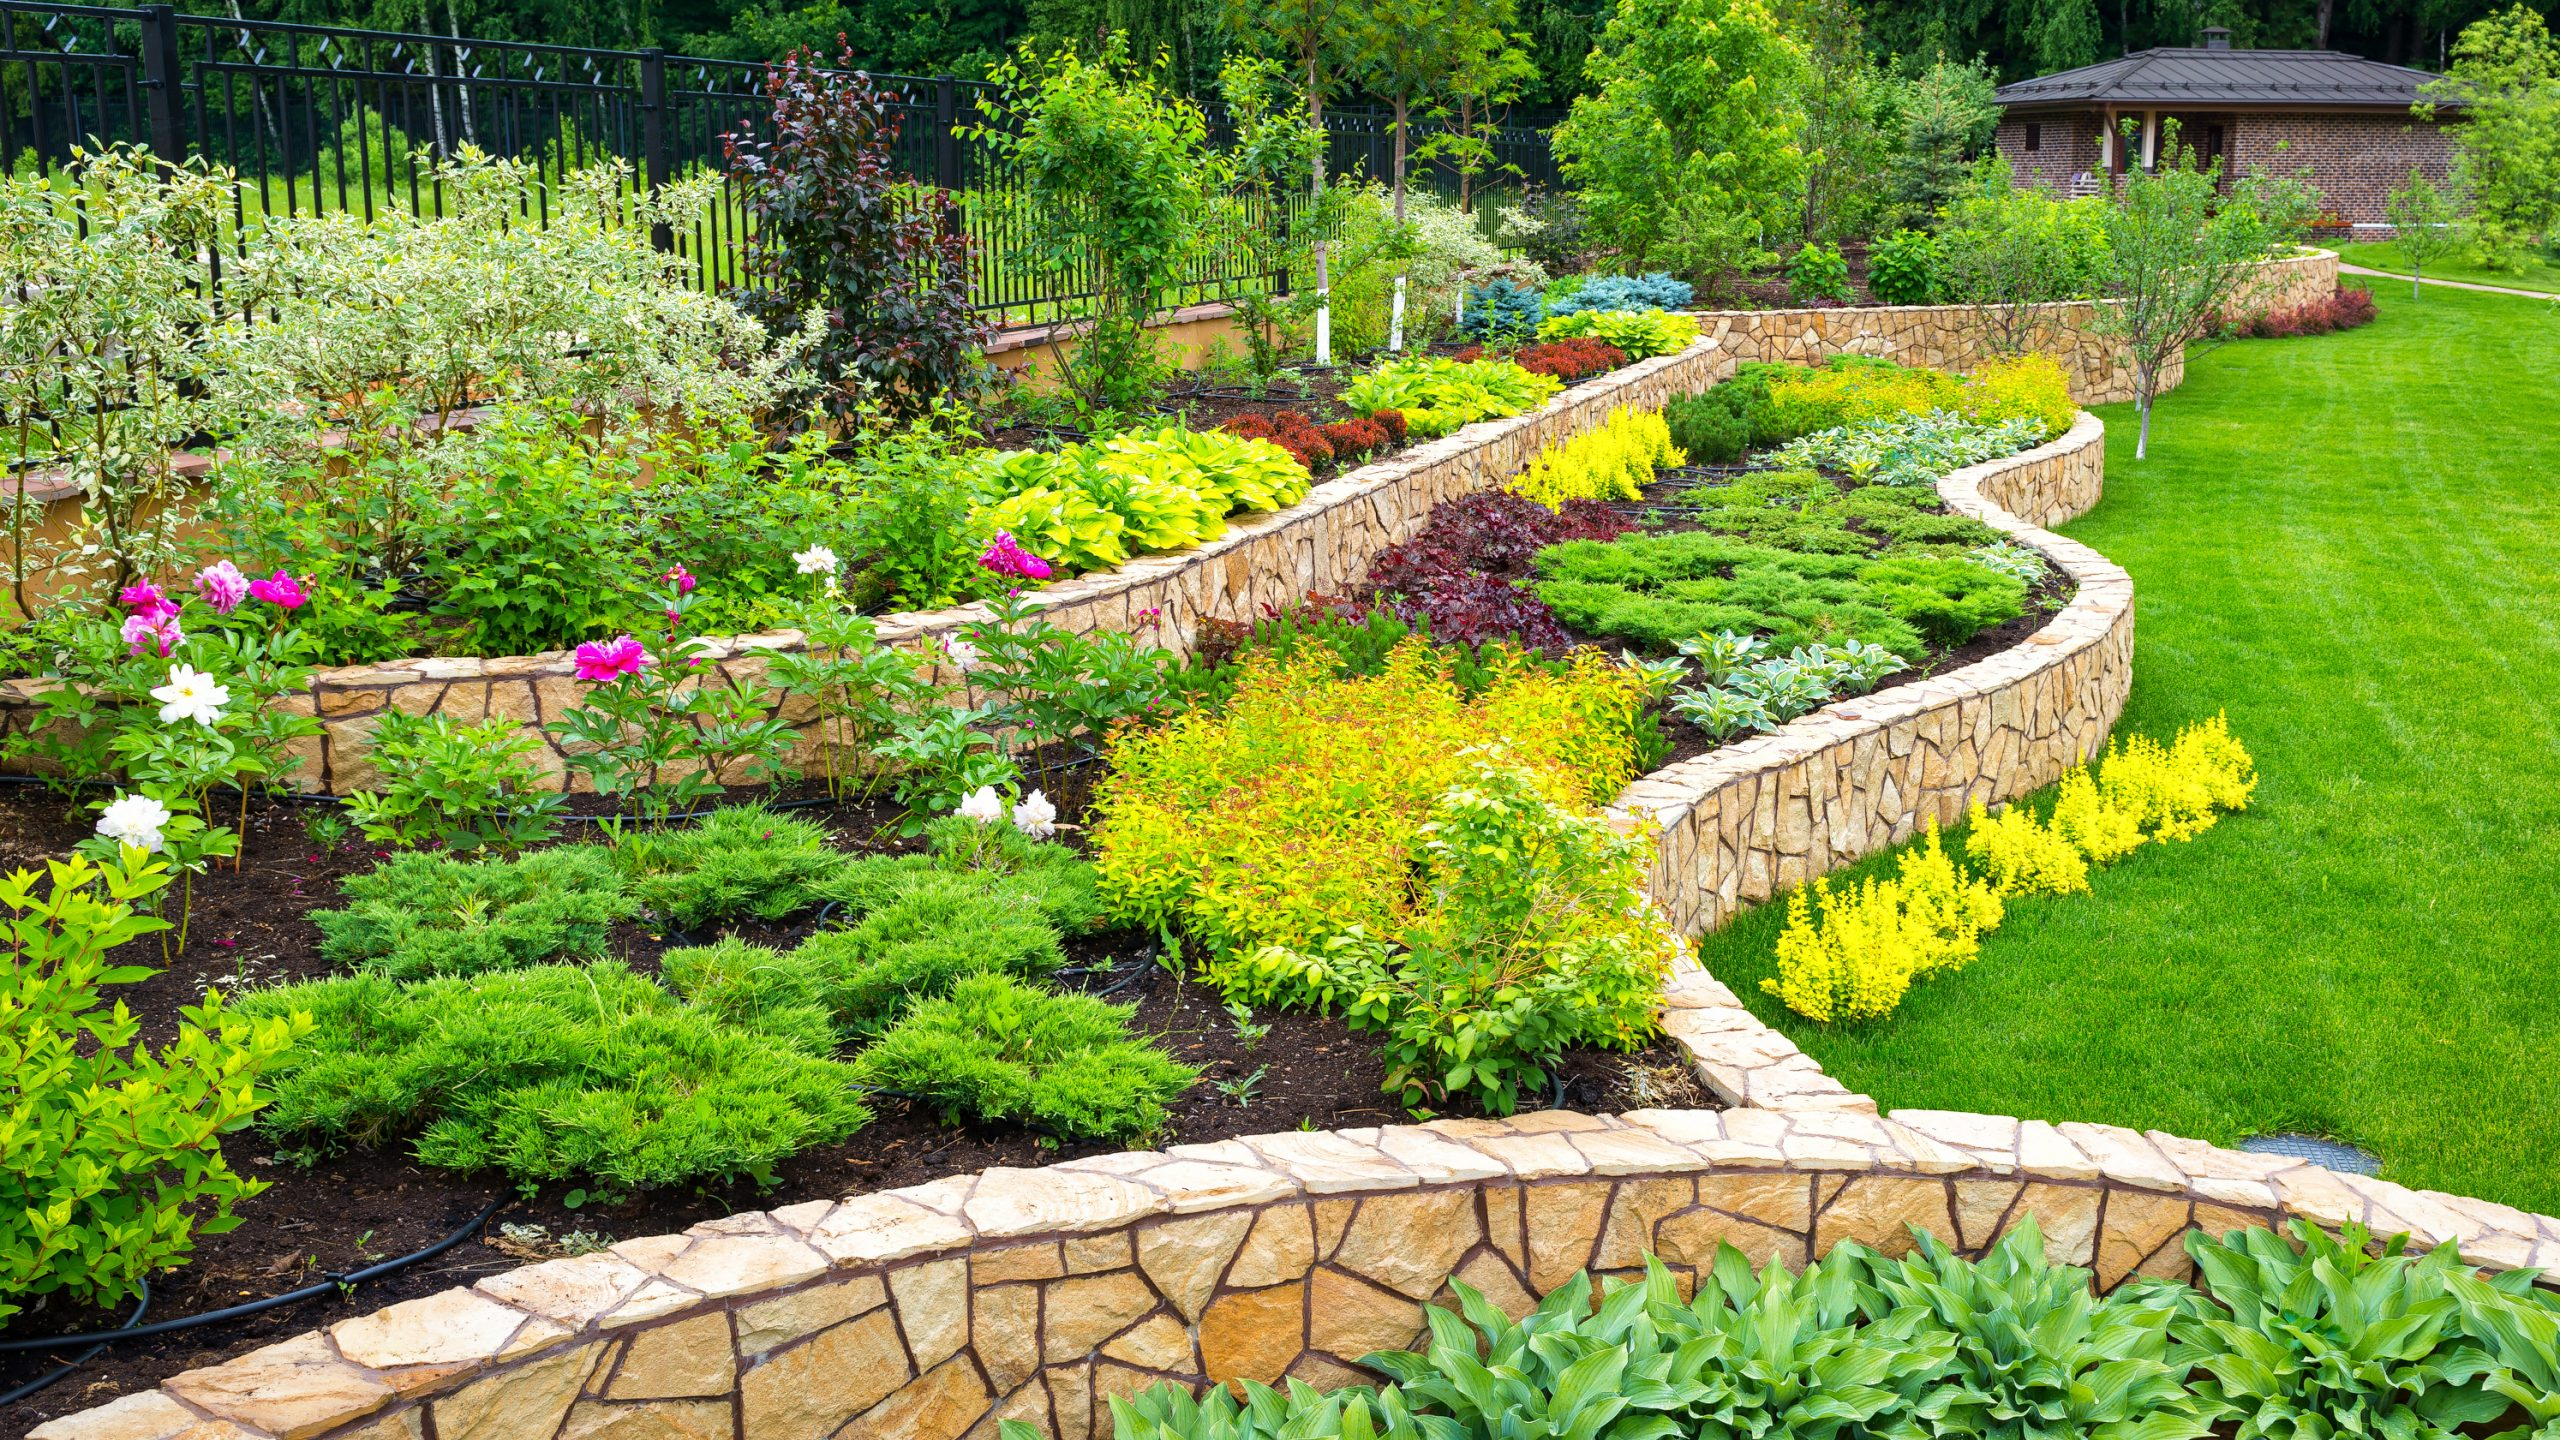 backyard with abundance of flowers and plants in well landscaped bedding